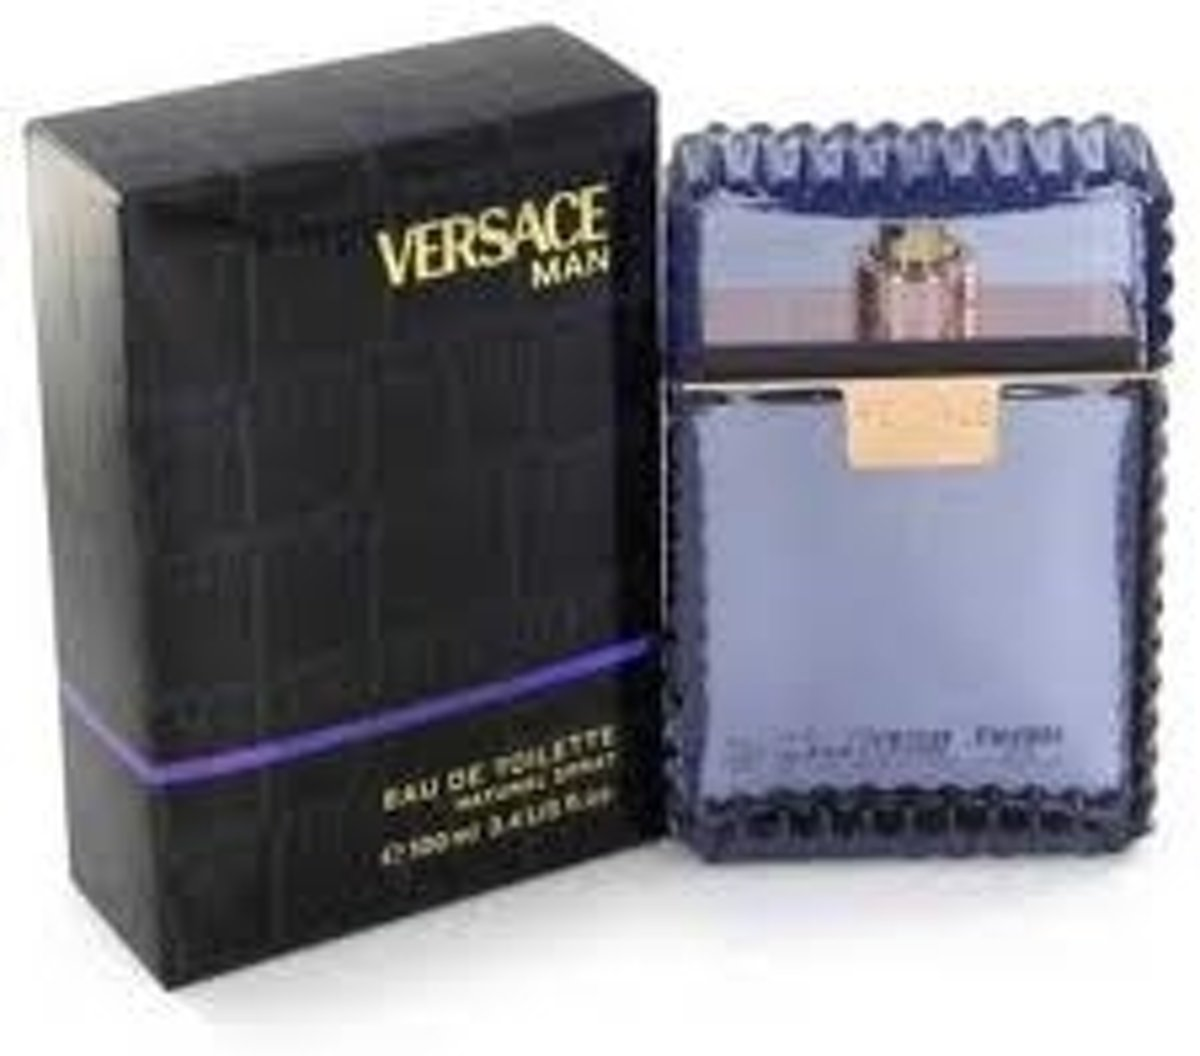 Versace - Eau de toilette - Man purple - 100 ml